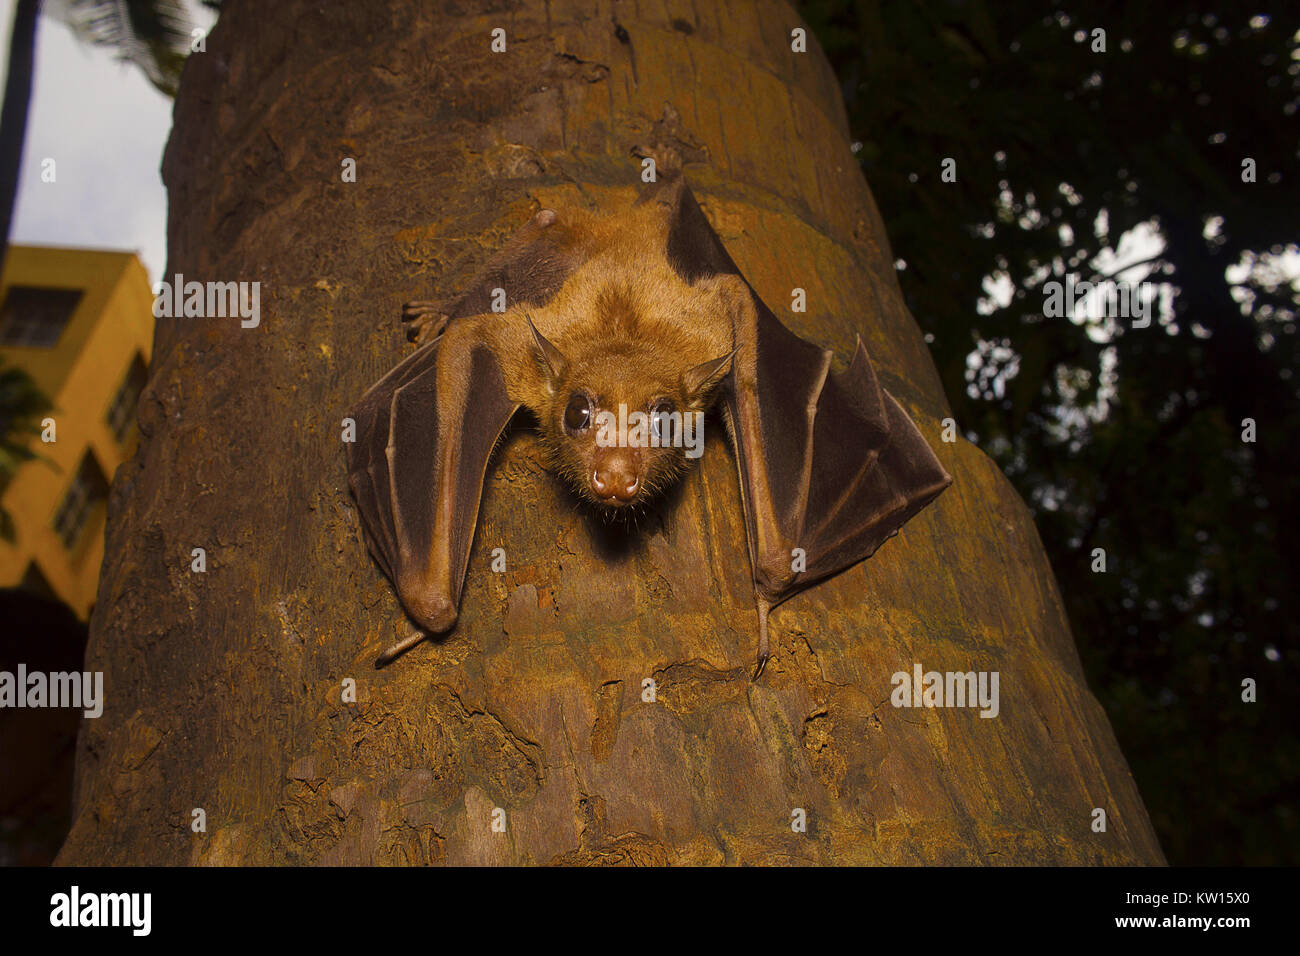 Indian flying fox Bat, Pteropus giganteus. Bhavans  college, Andheri west, Mumbai, Maharashtra, India Stock Photo